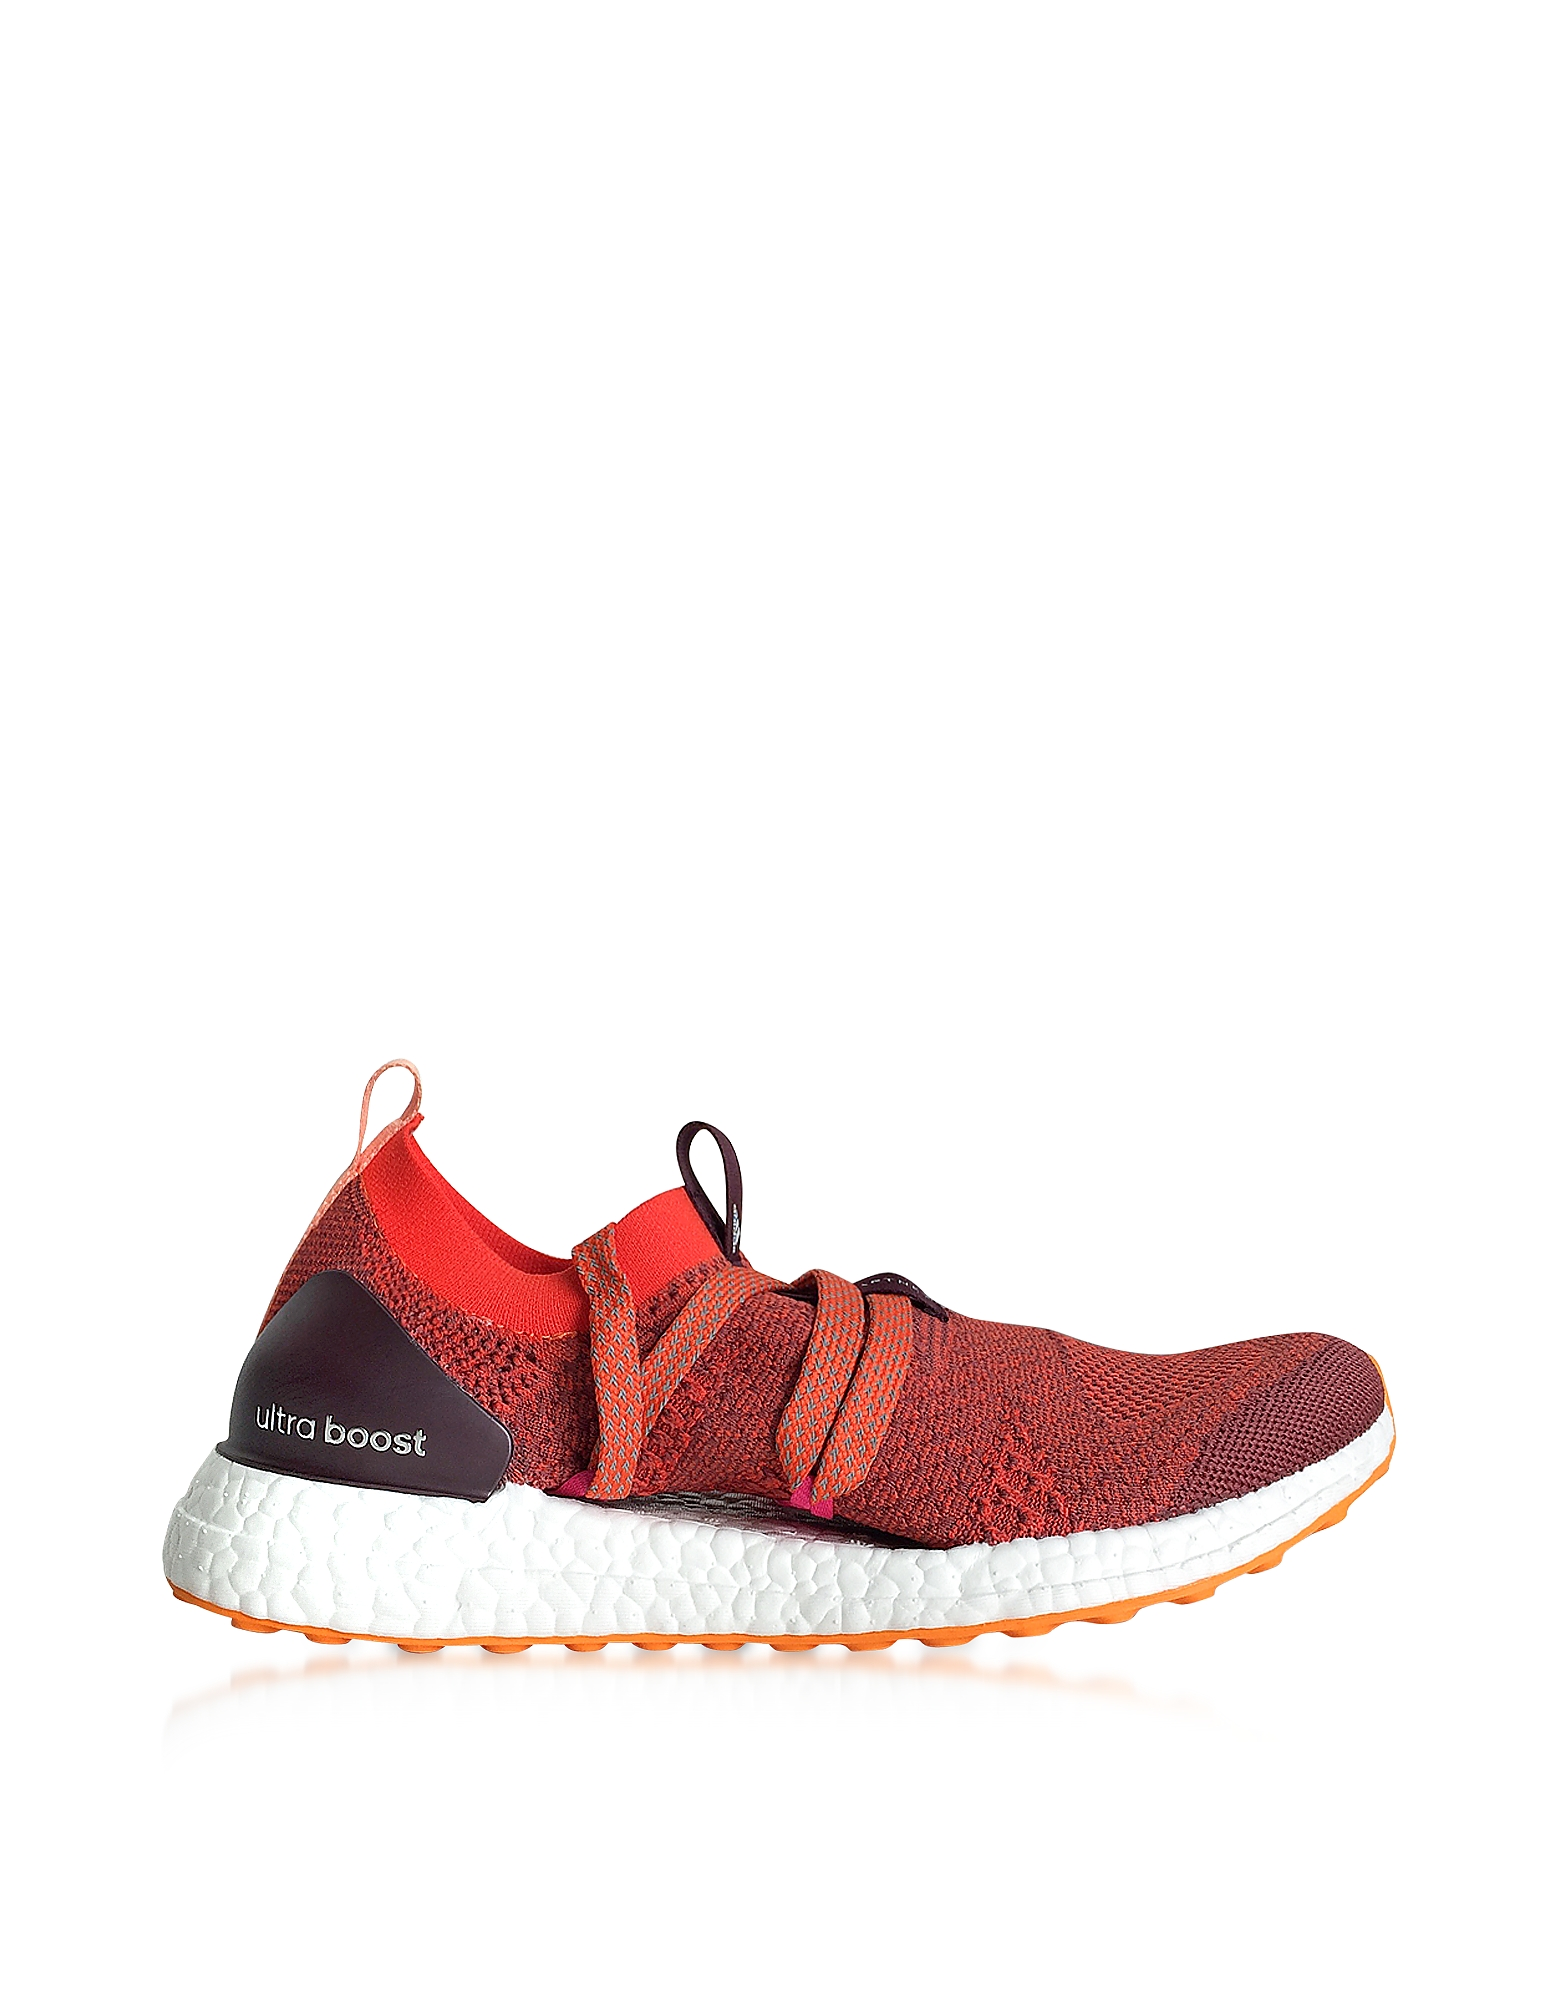 Adidas Stella McCartney Shoes, Clay Red Ultraboost X Trainers